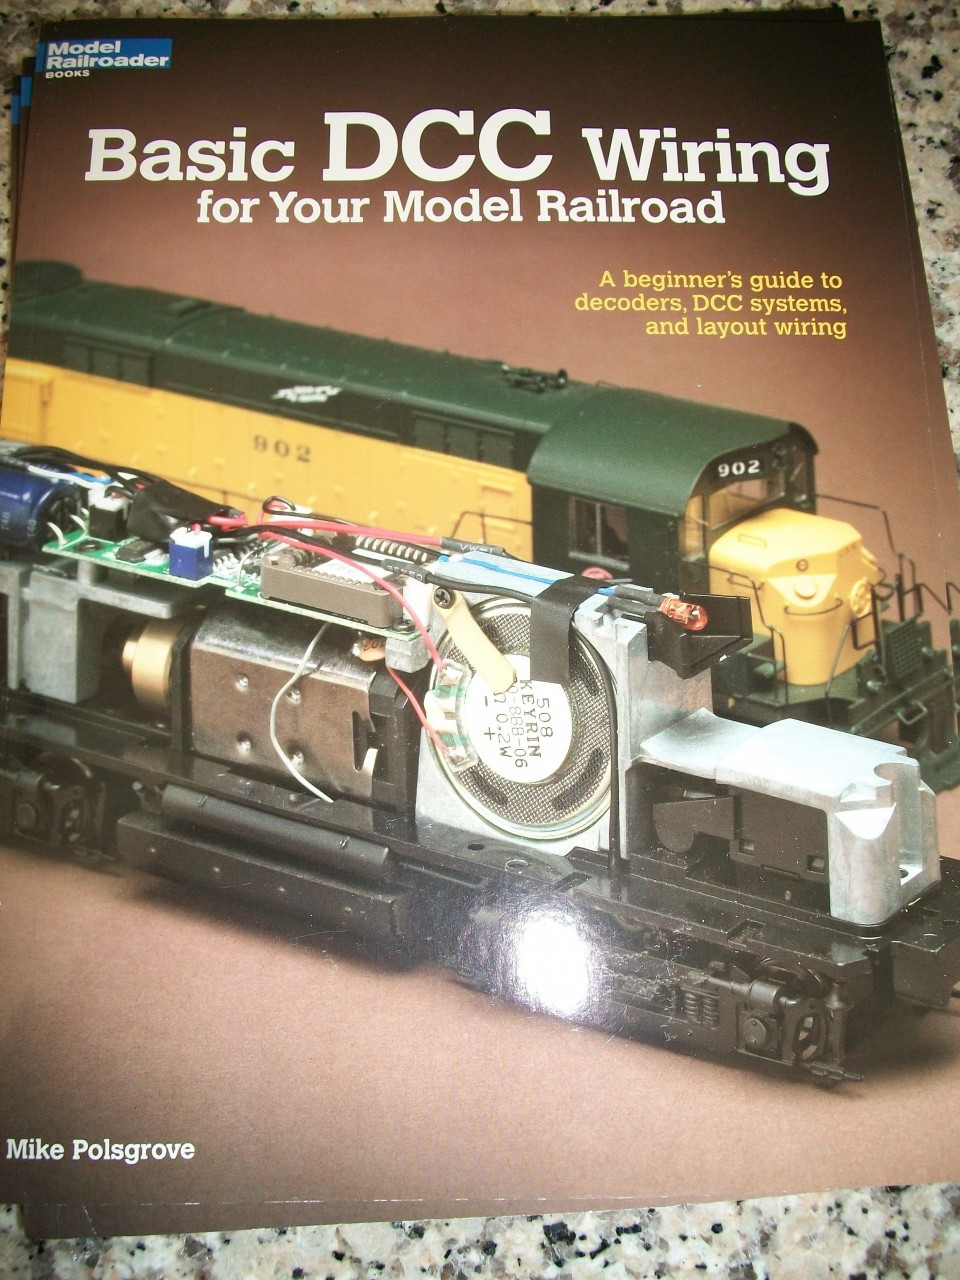 small resolution of model railroader basic dcc wiring for your model railroad image 1 loading zoom